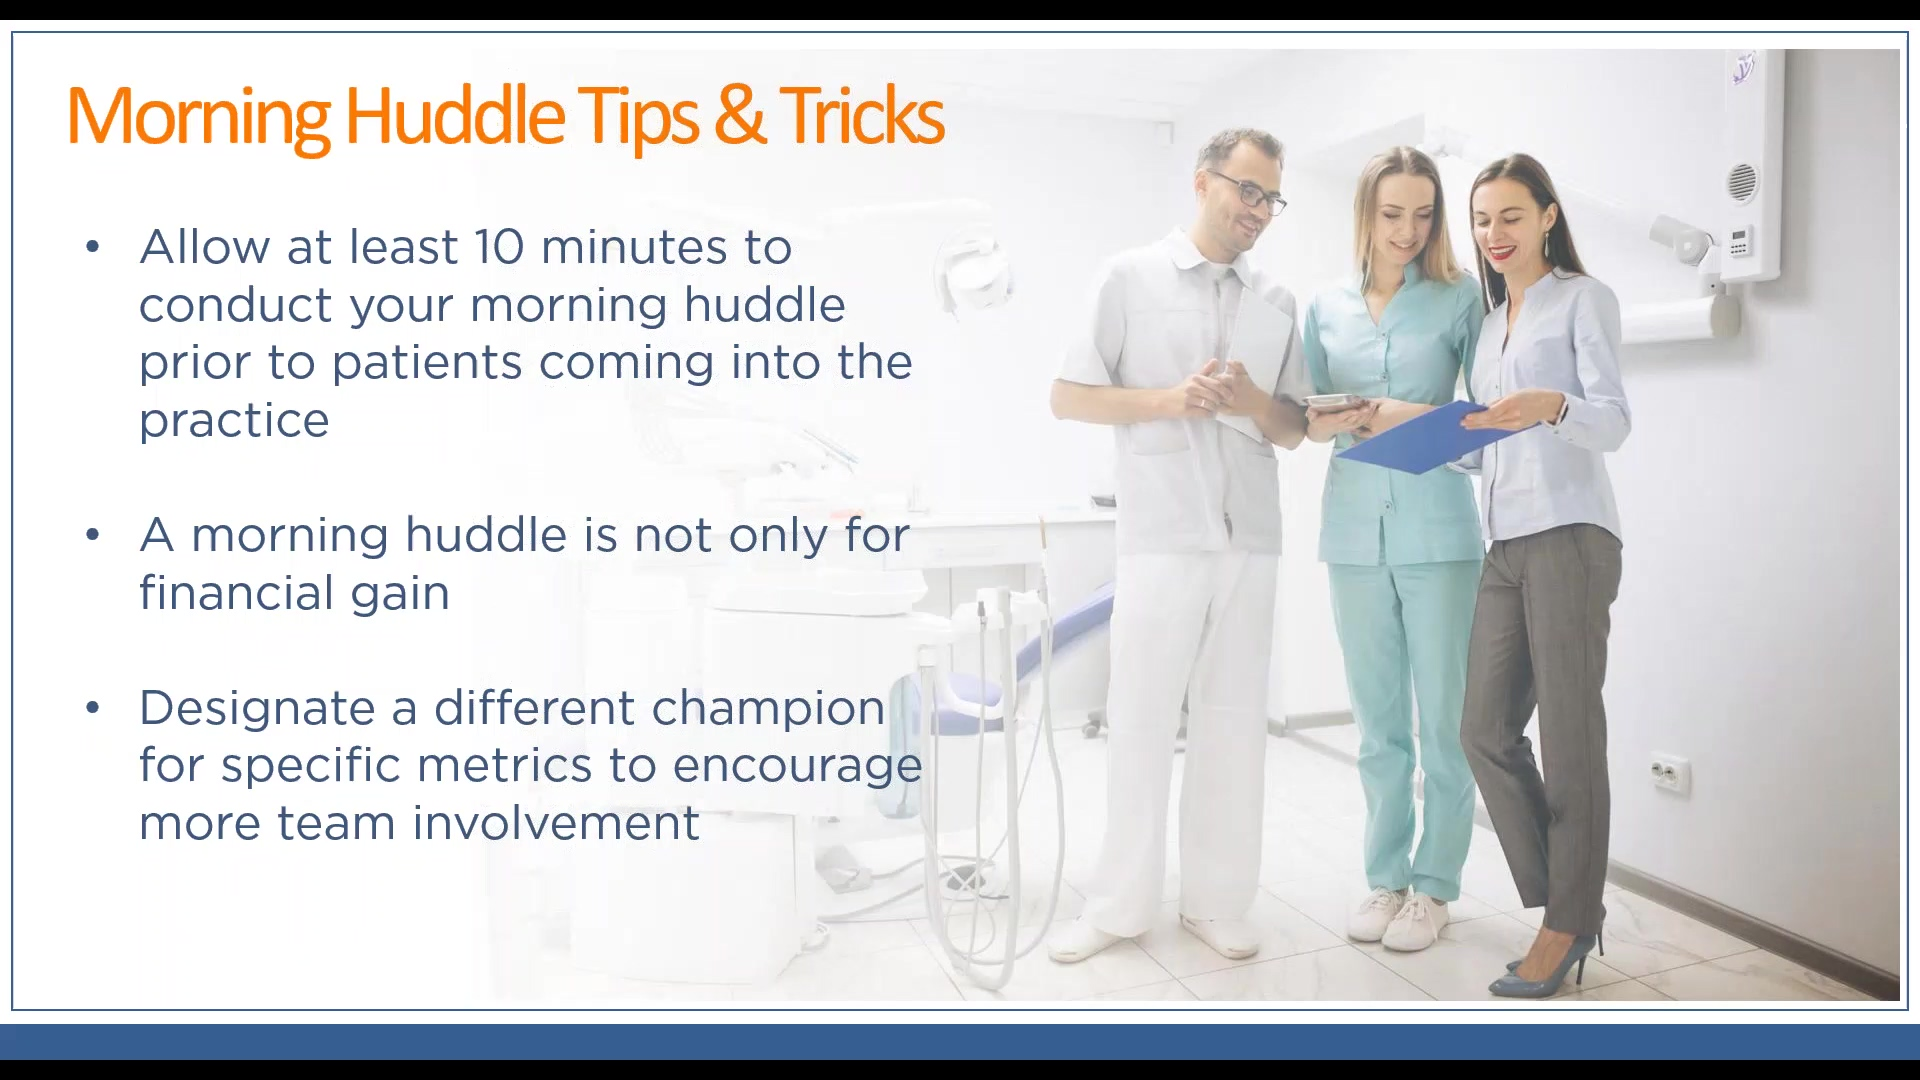 Mornign Huddle Tips and Tricks